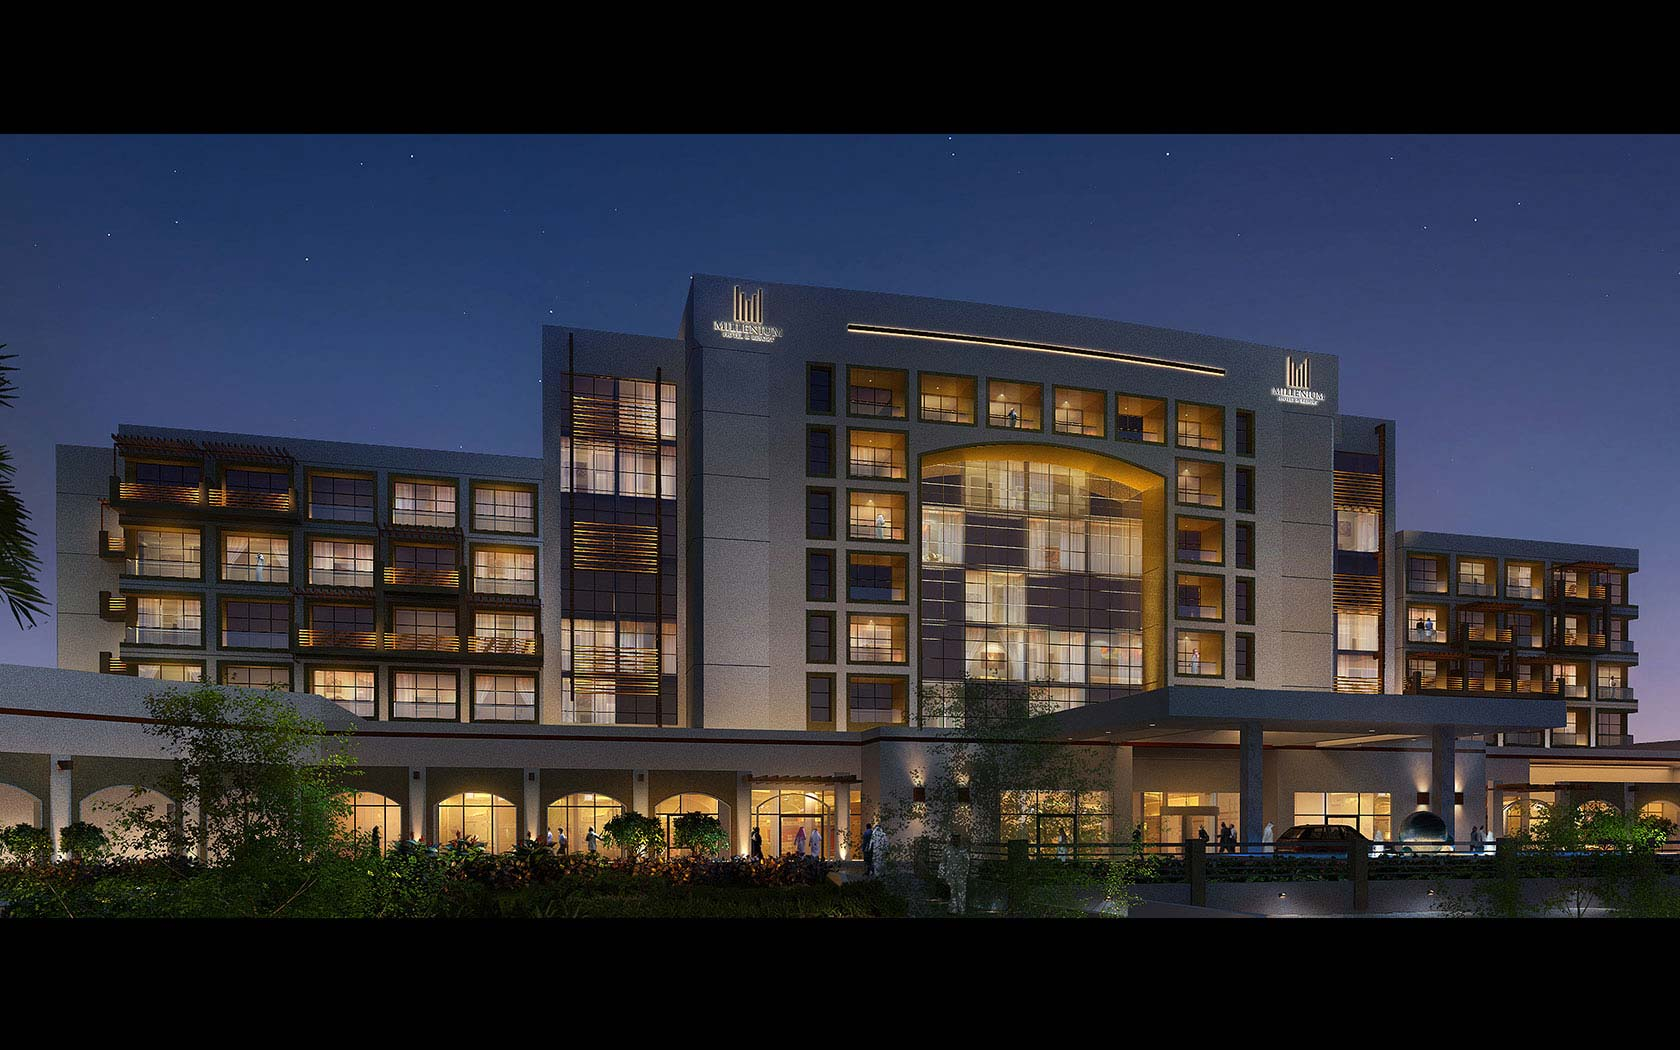 Delta lighting solutions projects millennium golf resort for Hotel design facade